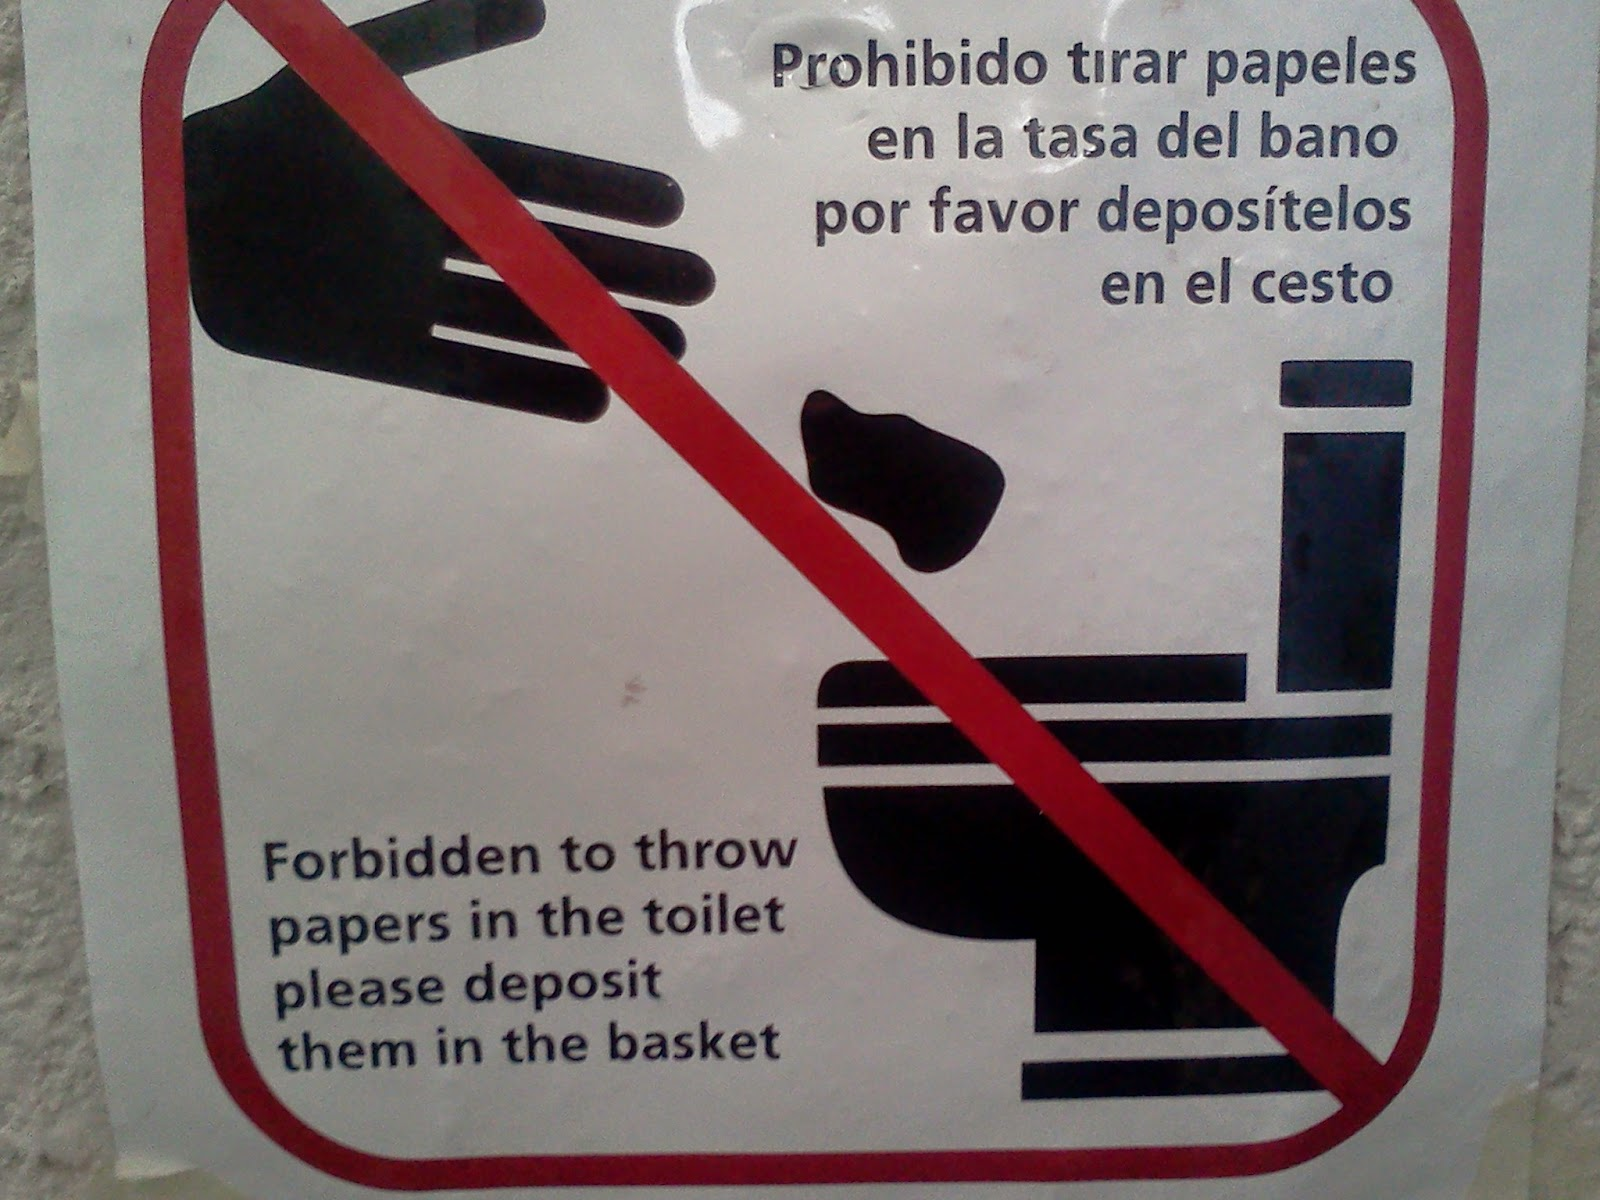 Forbidden to throw papers in the toilet please deposit them in the basket.